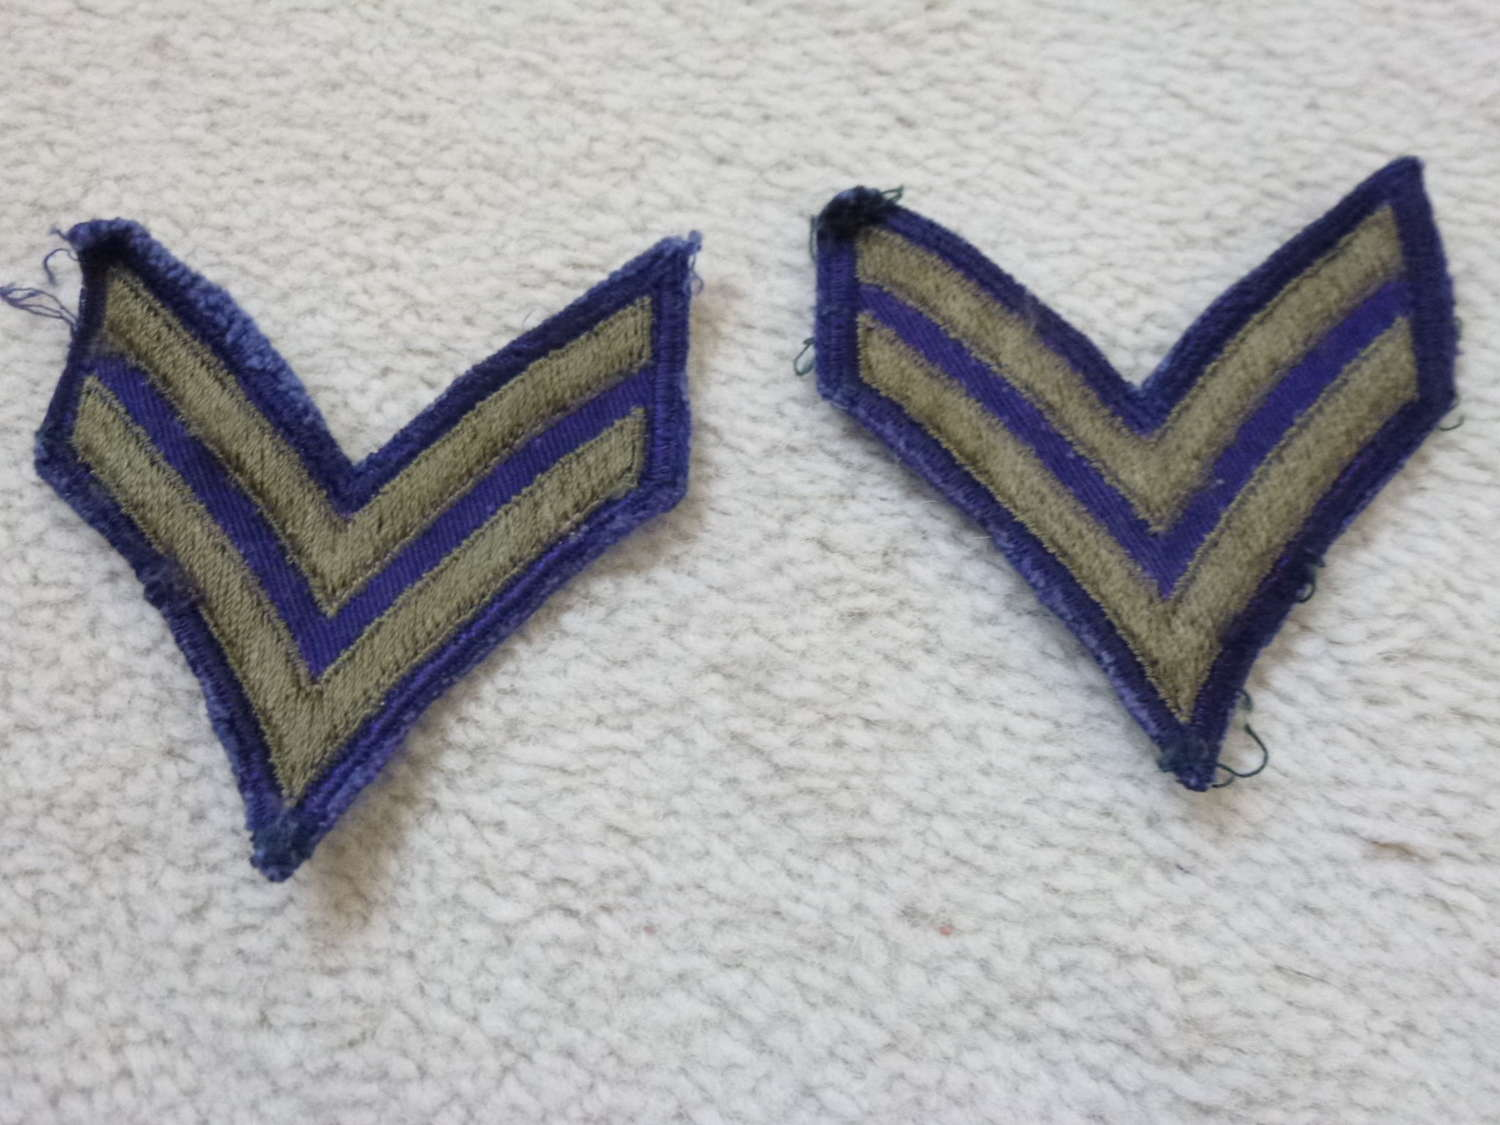 US army corporal stripes